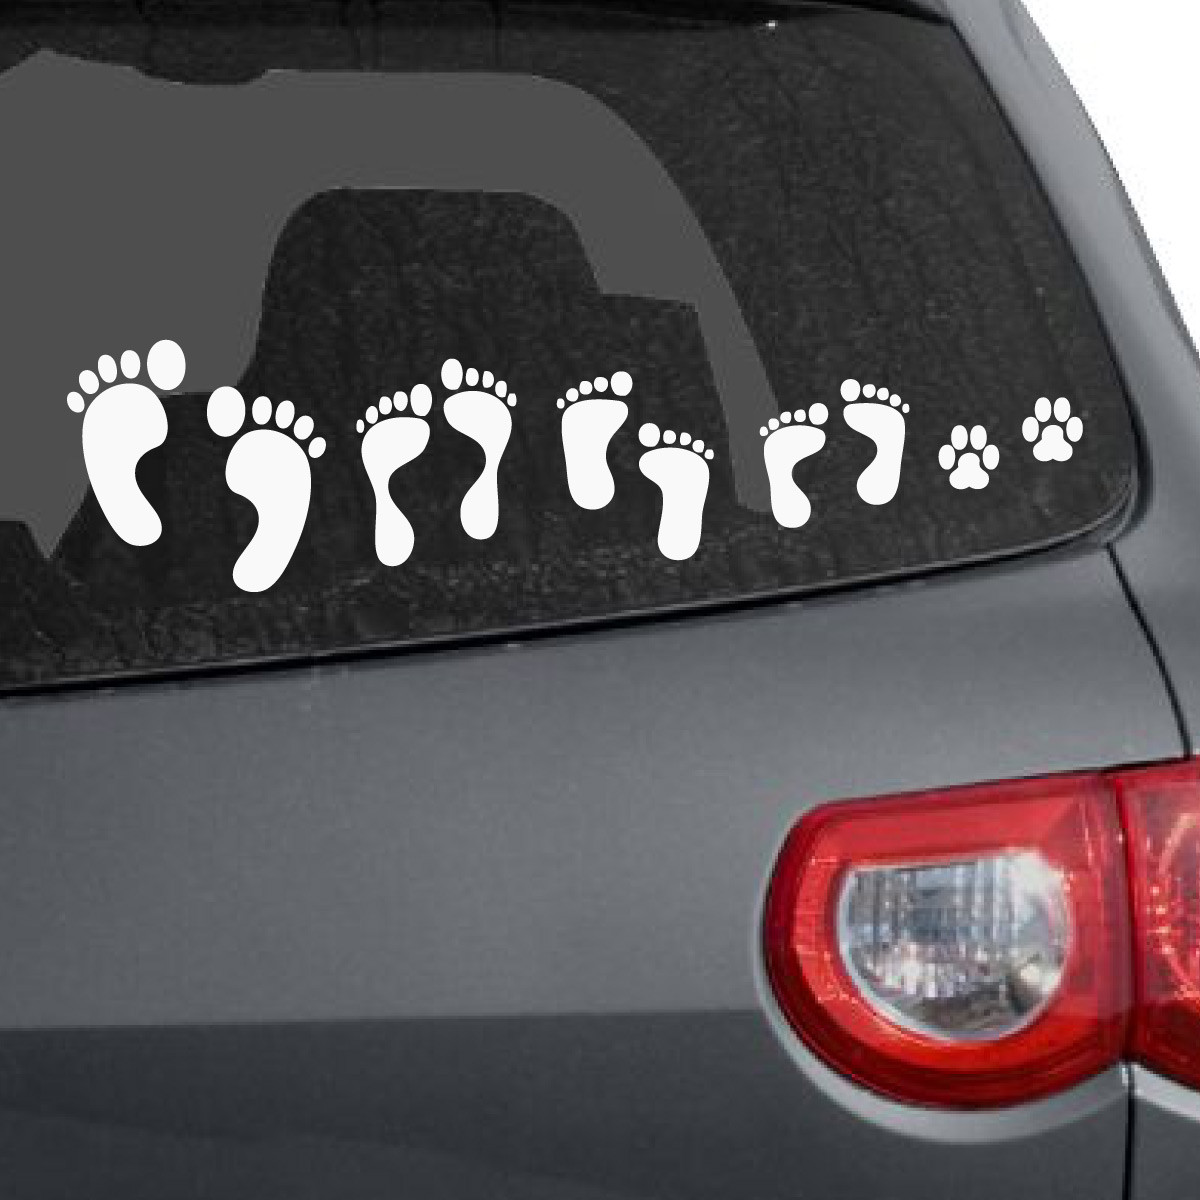 Foot print family car decal